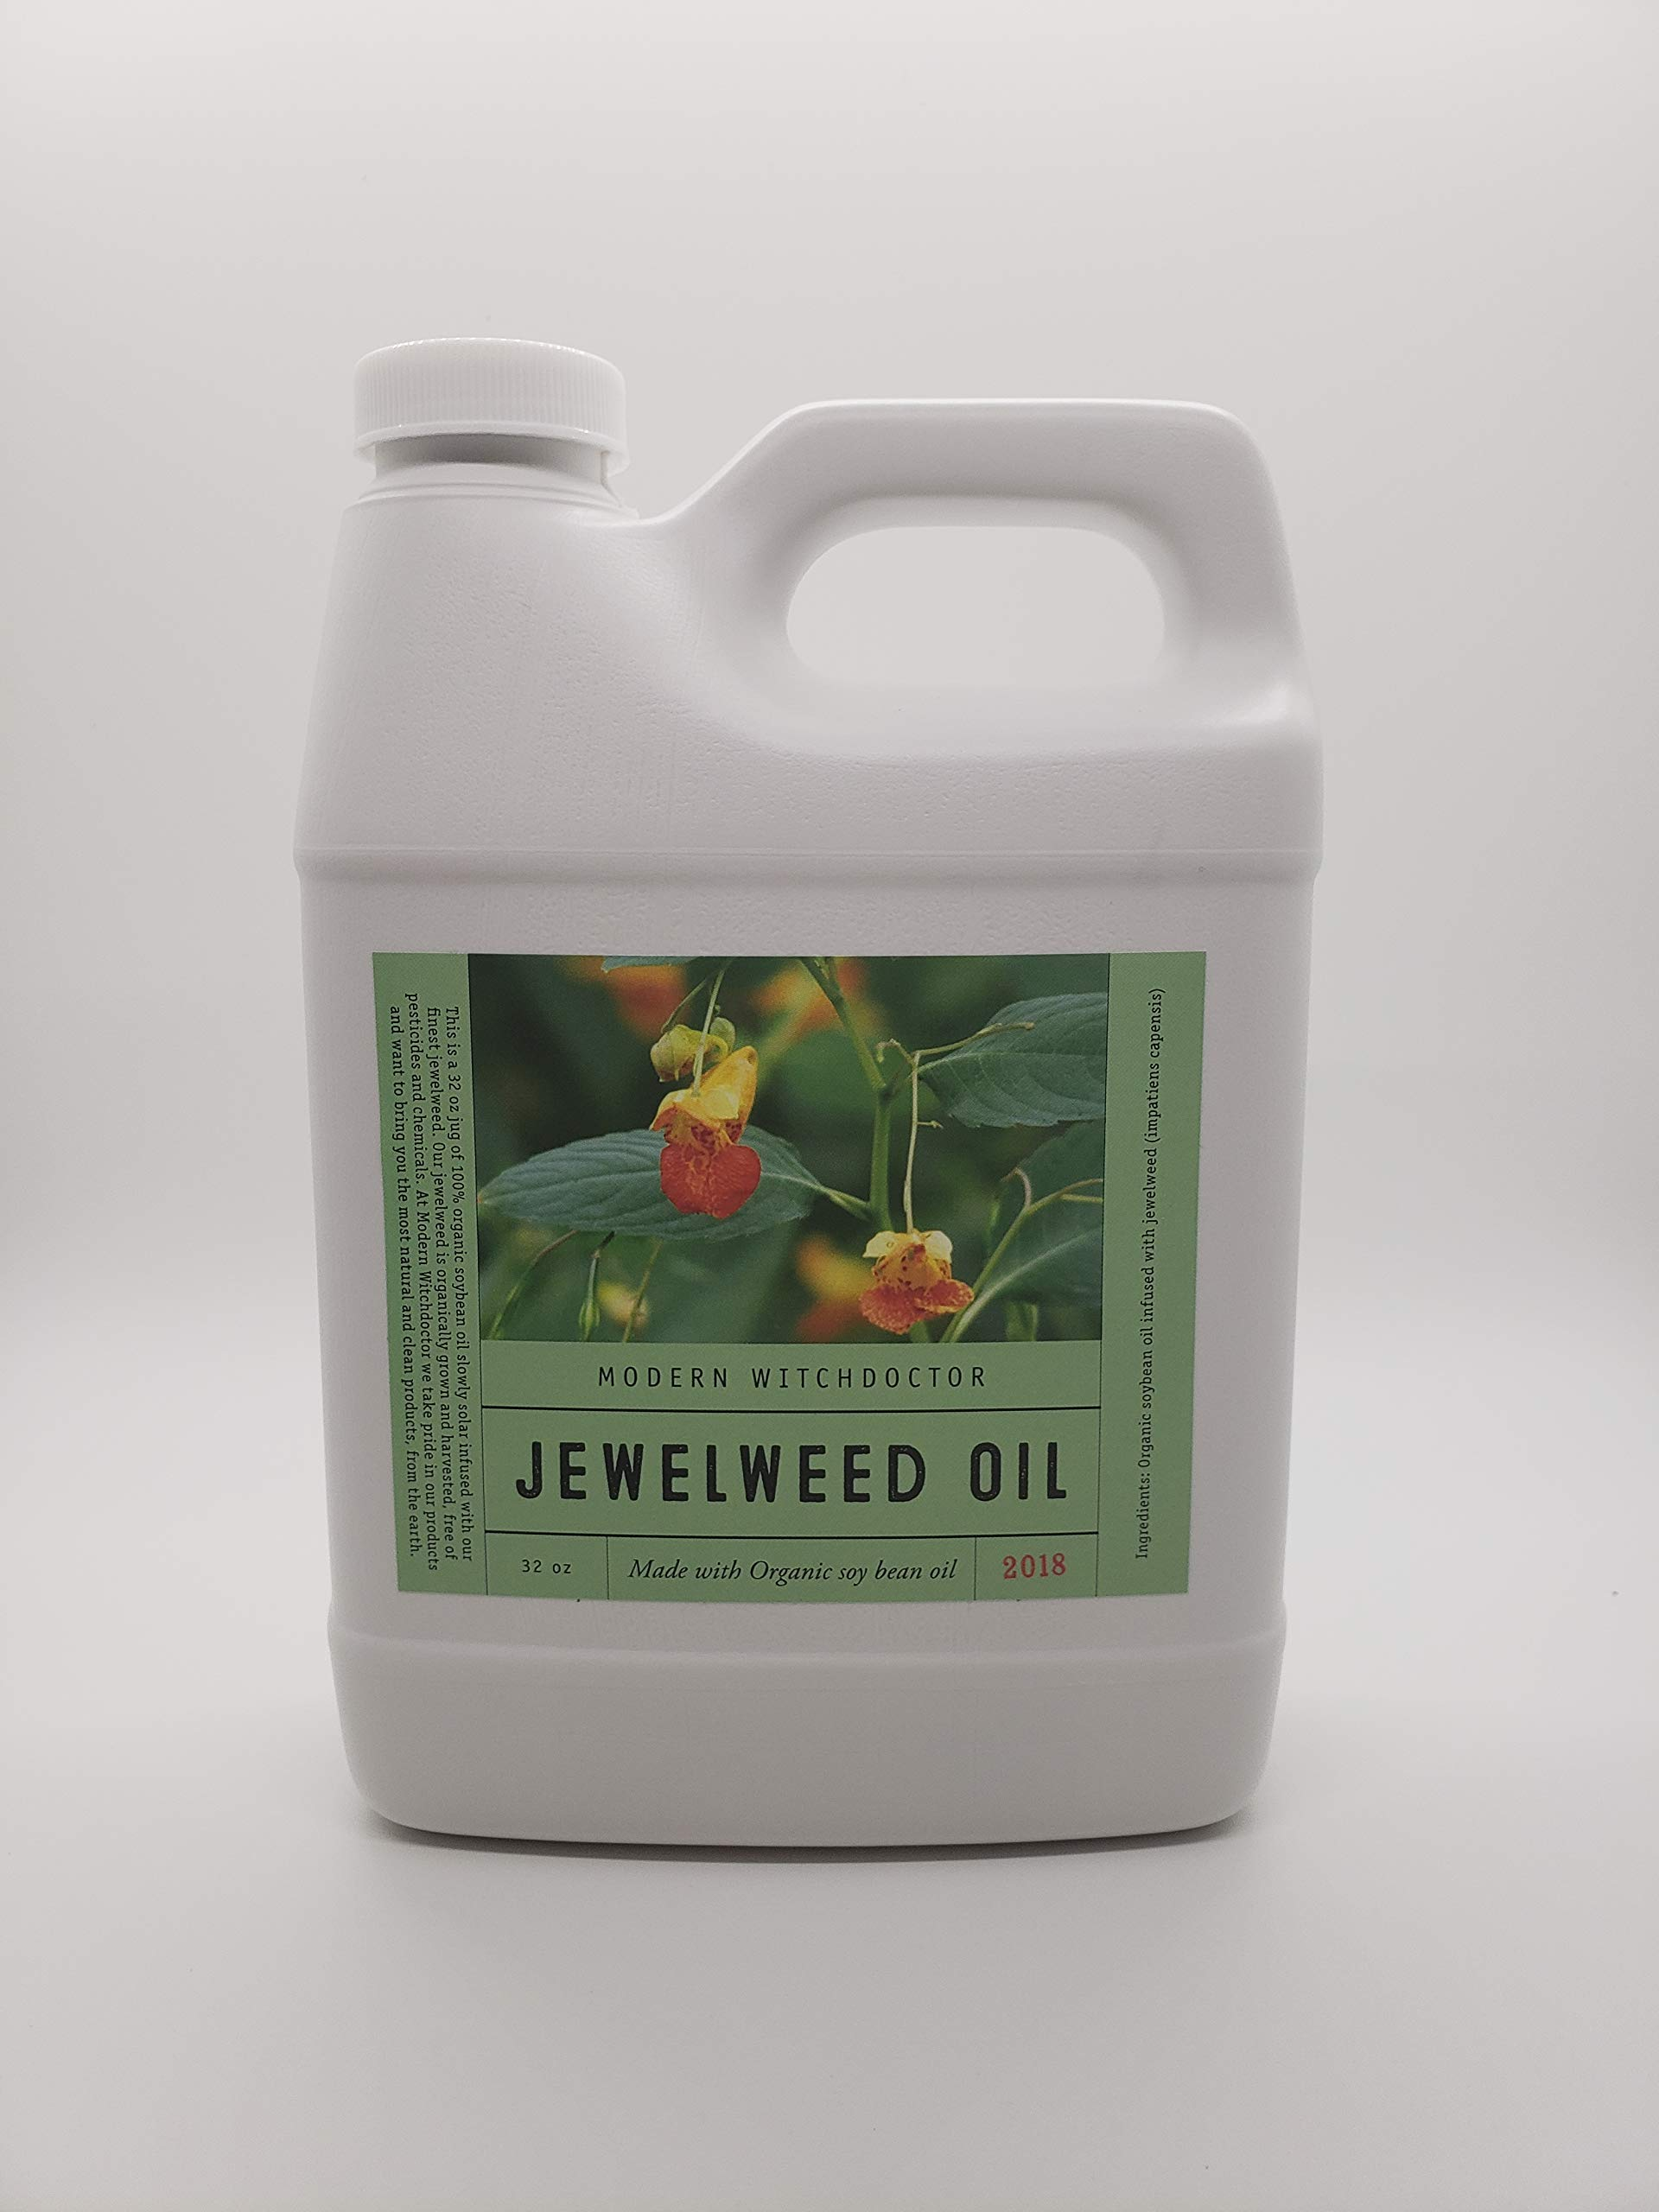 Jewelweed Oil by Modern WitchDoctor